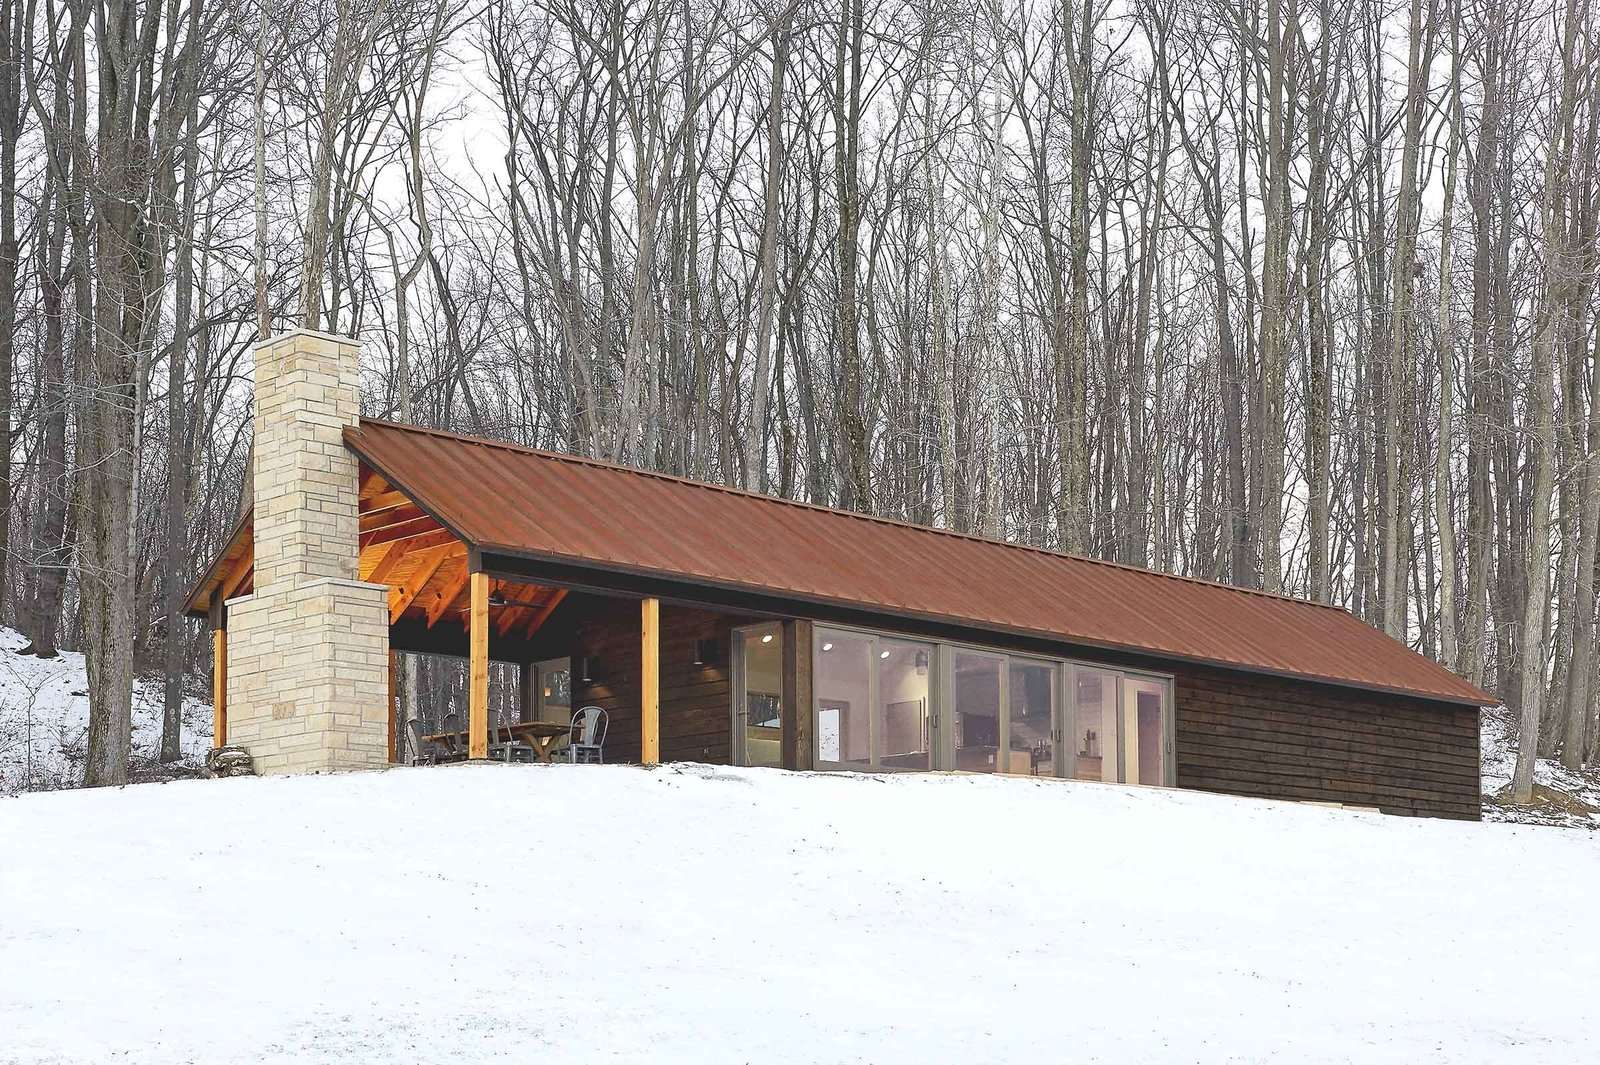 The retreat's southern exposure maximizes sunlight with 24 feet of floor-to-ceiling windows. The sun's warmth is absorbed and stored in the concrete floor, keeping the interior warm. Combined with thickly insulated walls, the cabin requires little additional energy, and has gone up to three days in winter without any electrical heating.  Off-Grid Retreat by Zachary Edelson from Modern Gabled Cabins